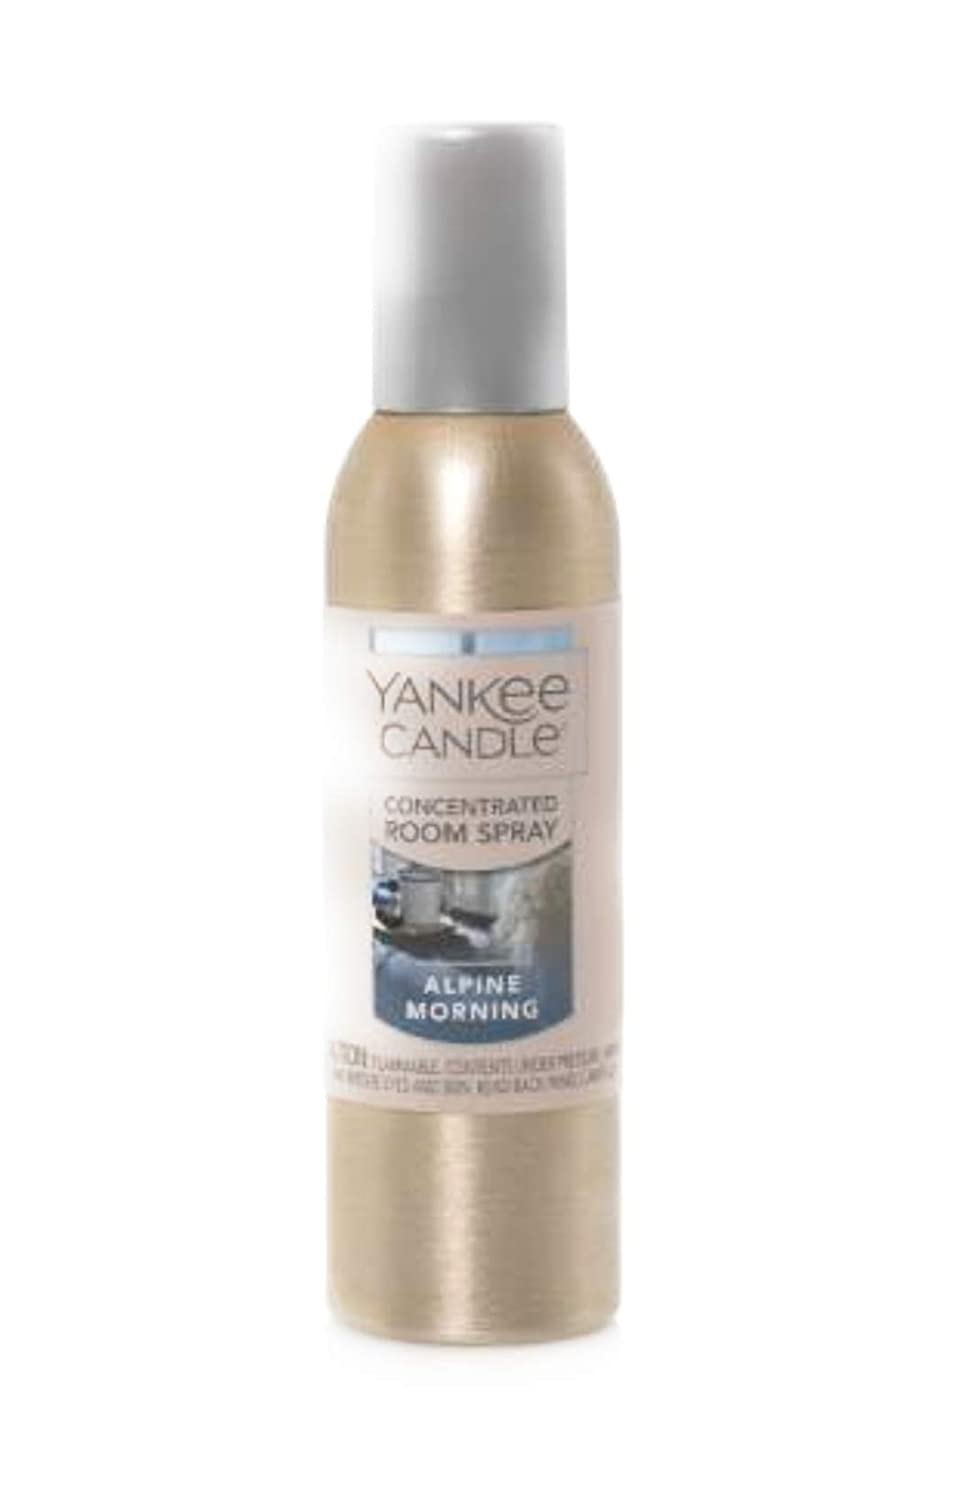 Yankee Candle Alpine Morning Room Spray